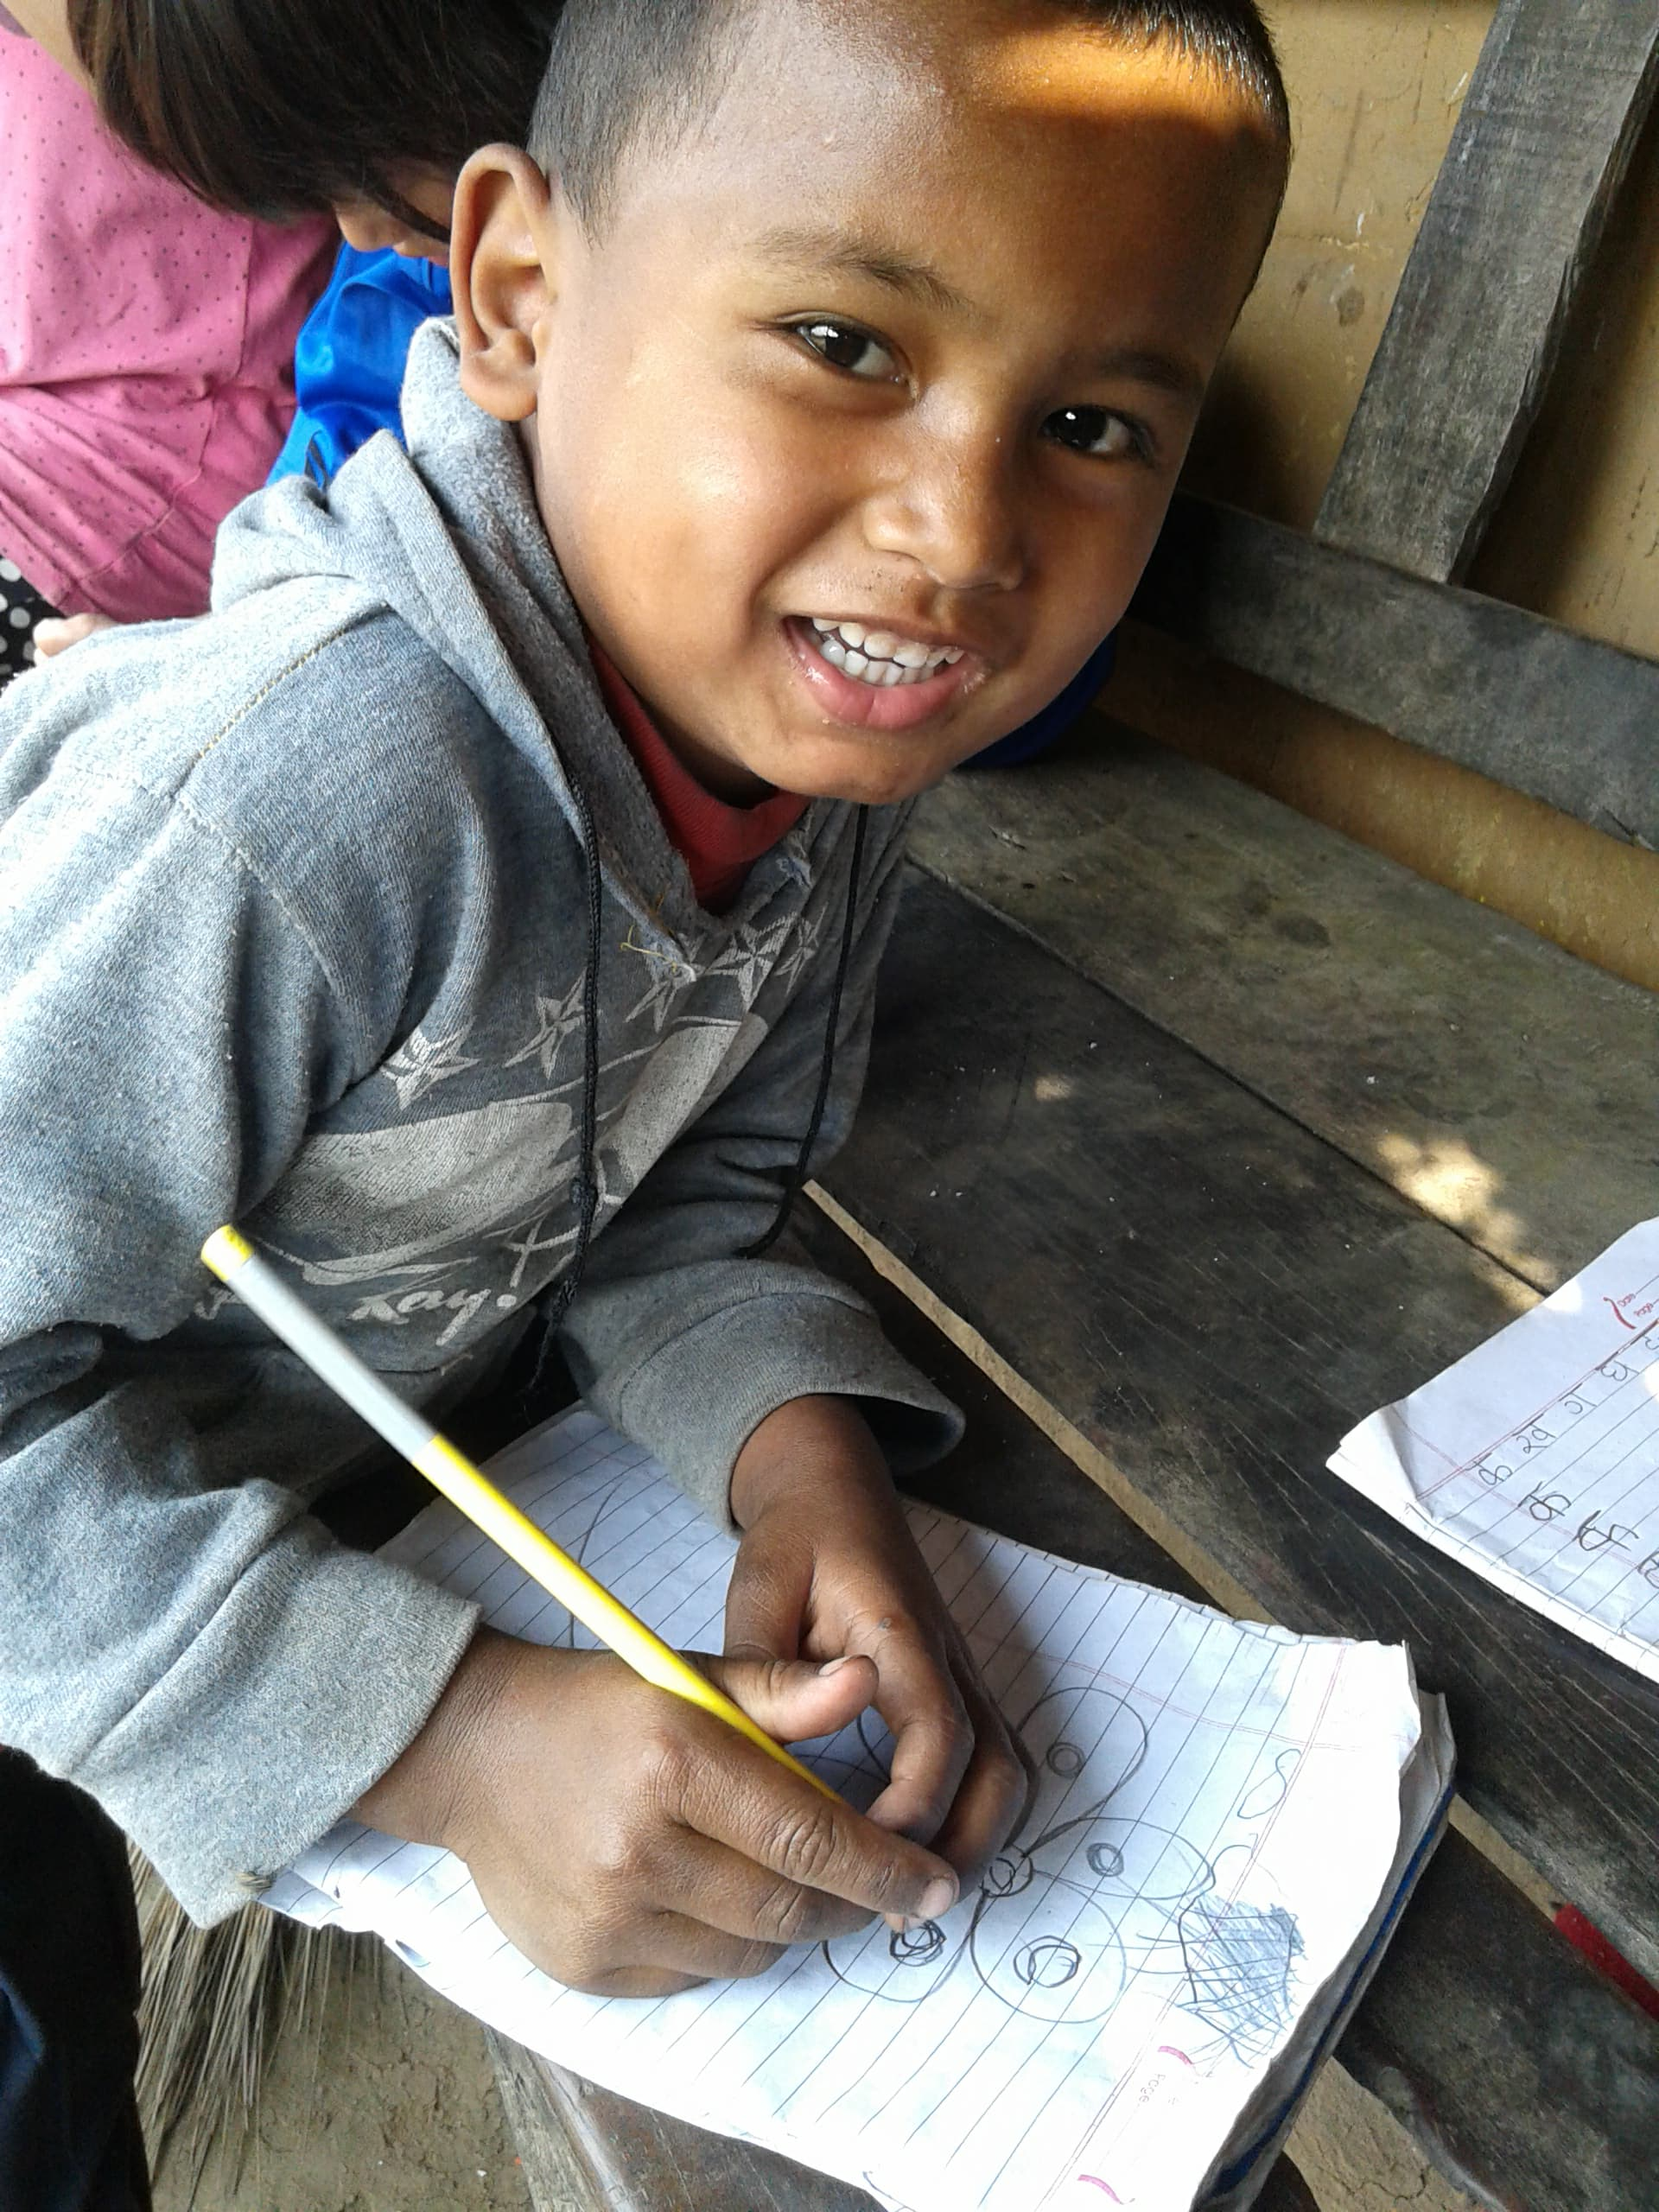 A young boy in Nepal learns in an open air classroom. Although most of the students in the slums are girls, Maharjan says they are working to help young boys stay interested in education.